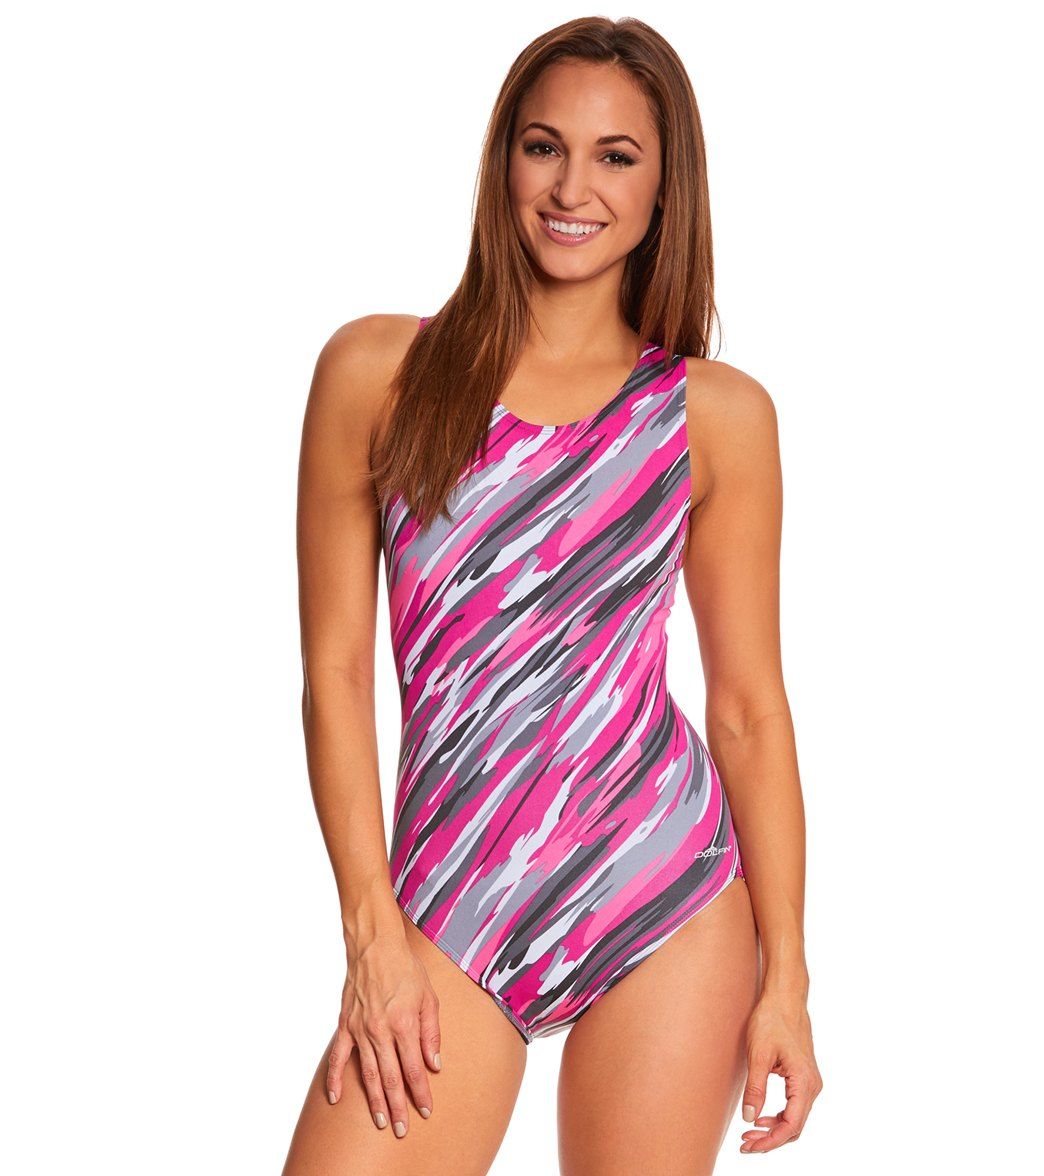 b6aff22b1ac ... Dolfin Aquashape Cascade Moderate Lap One Piece Swimsuit. Play Video.  MODEL MEASUREMENTS